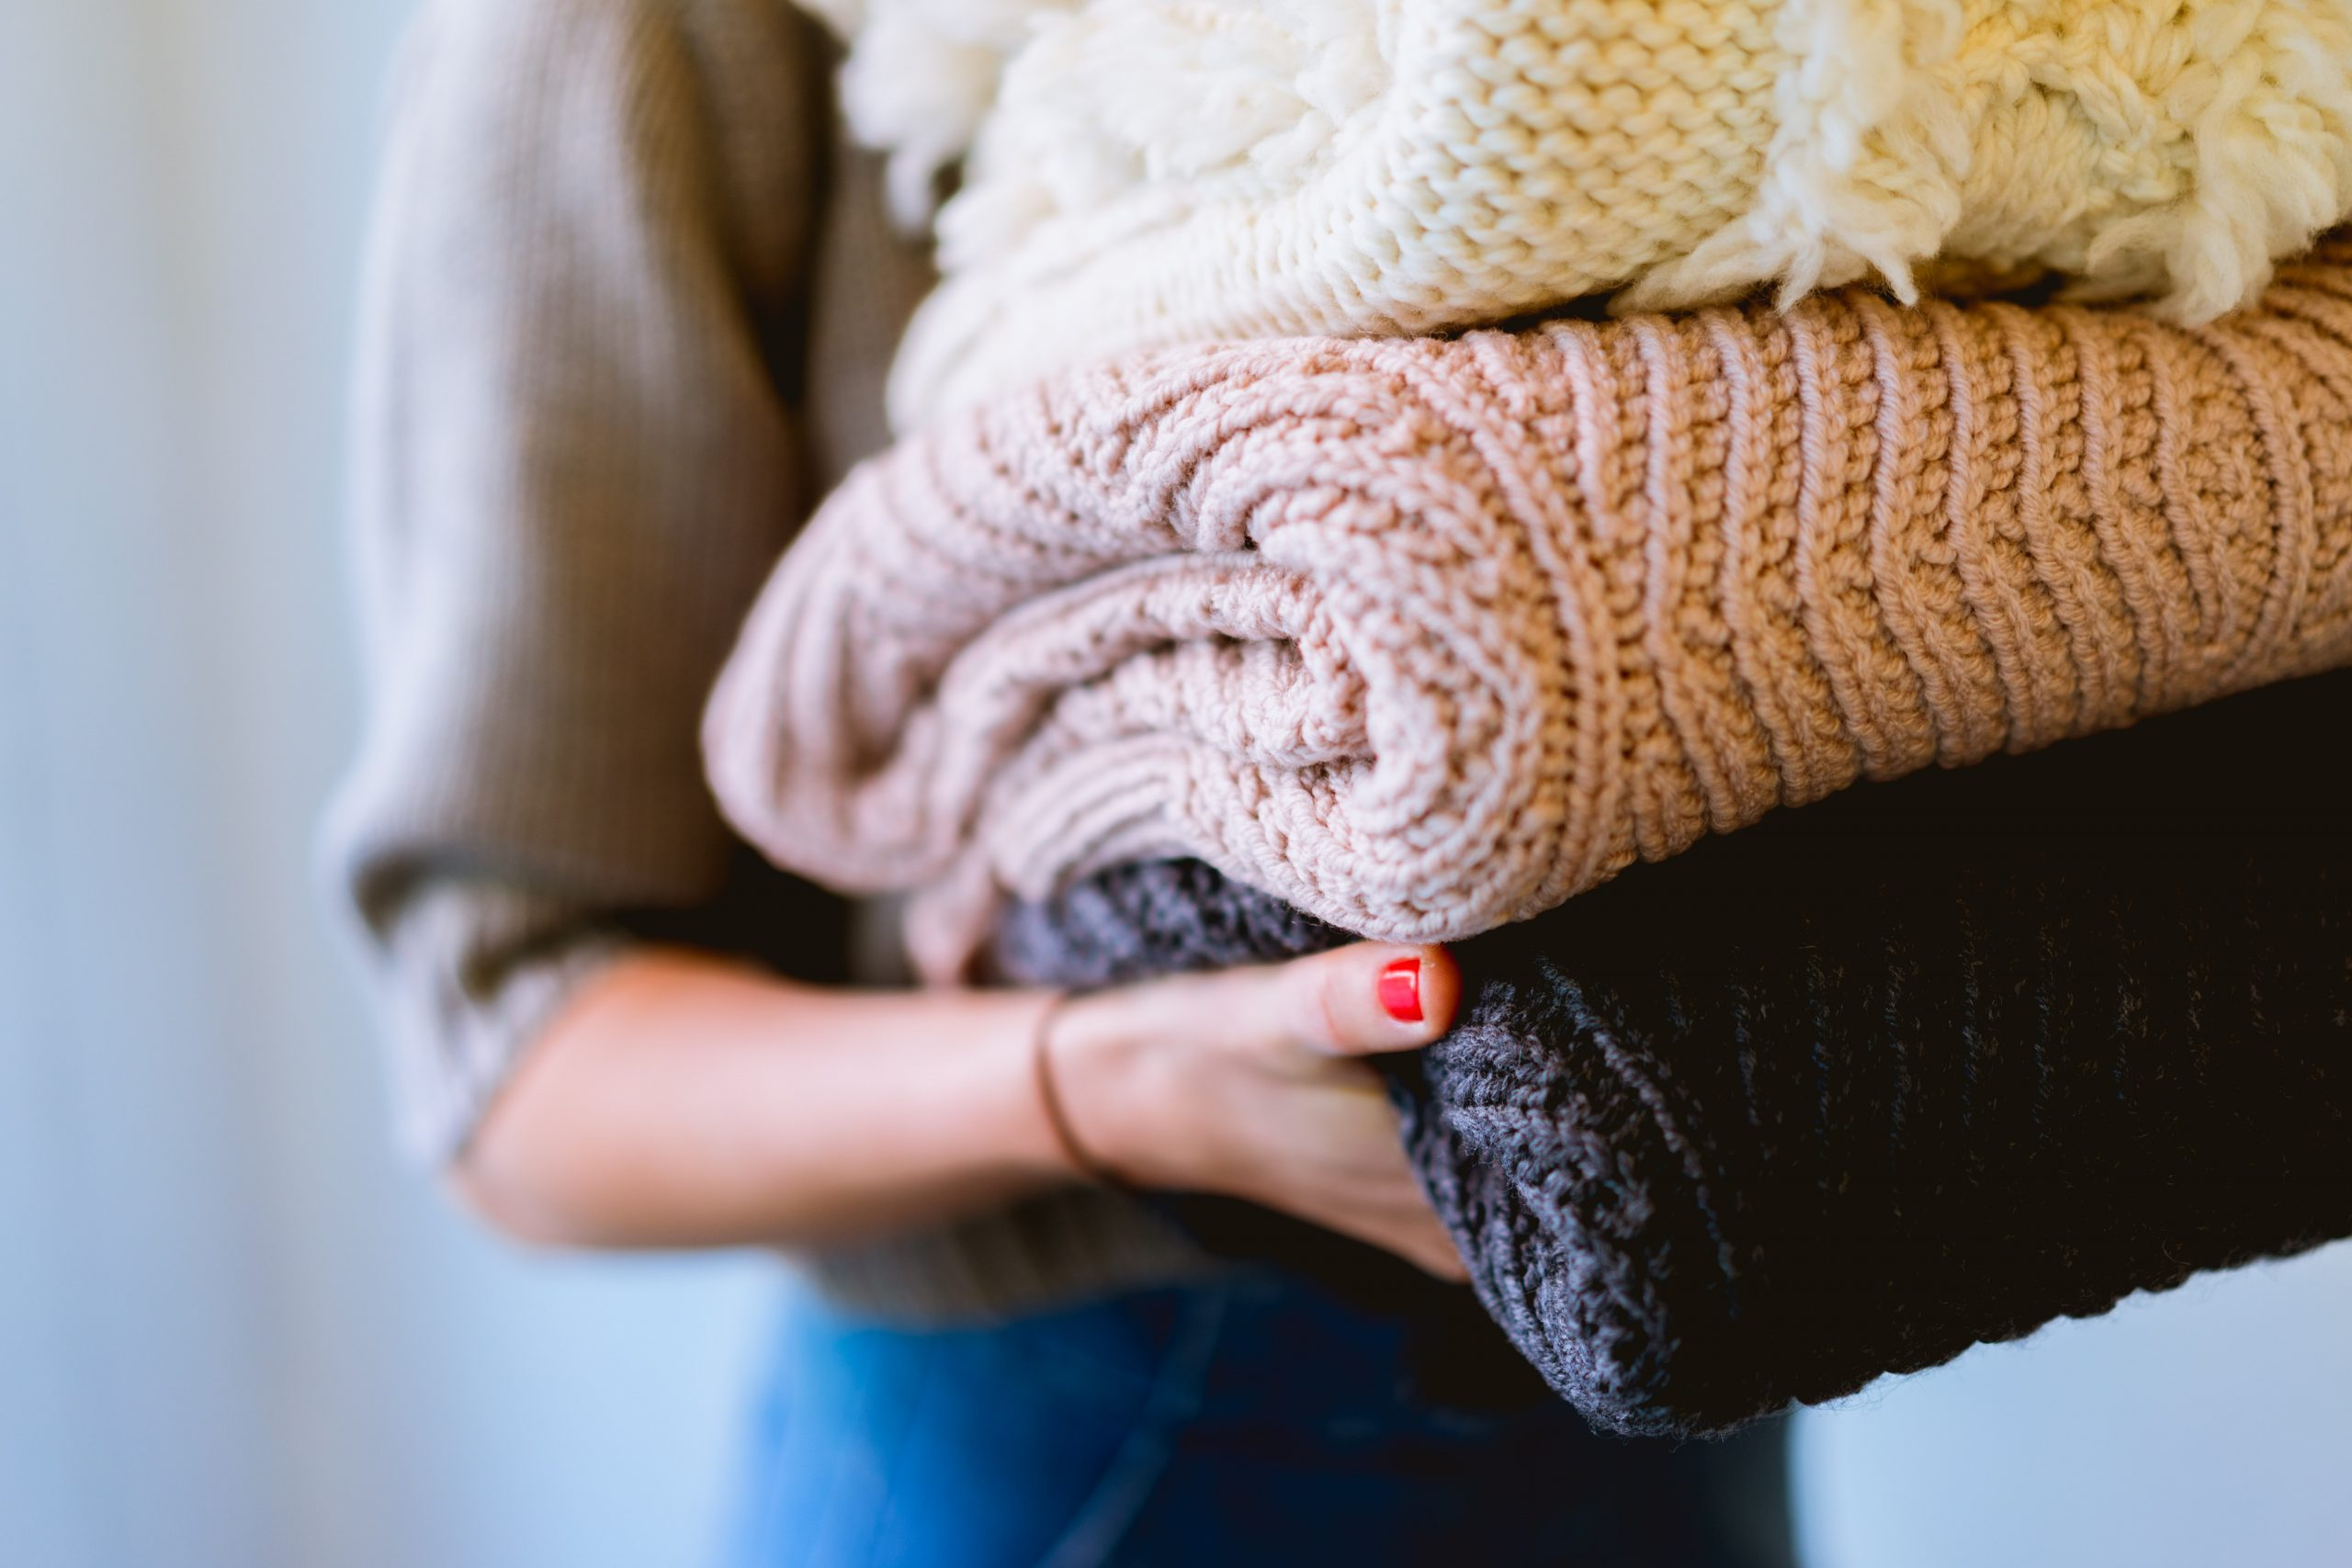 girl holding sweaters for article The Best Winter Sweaters Under $50